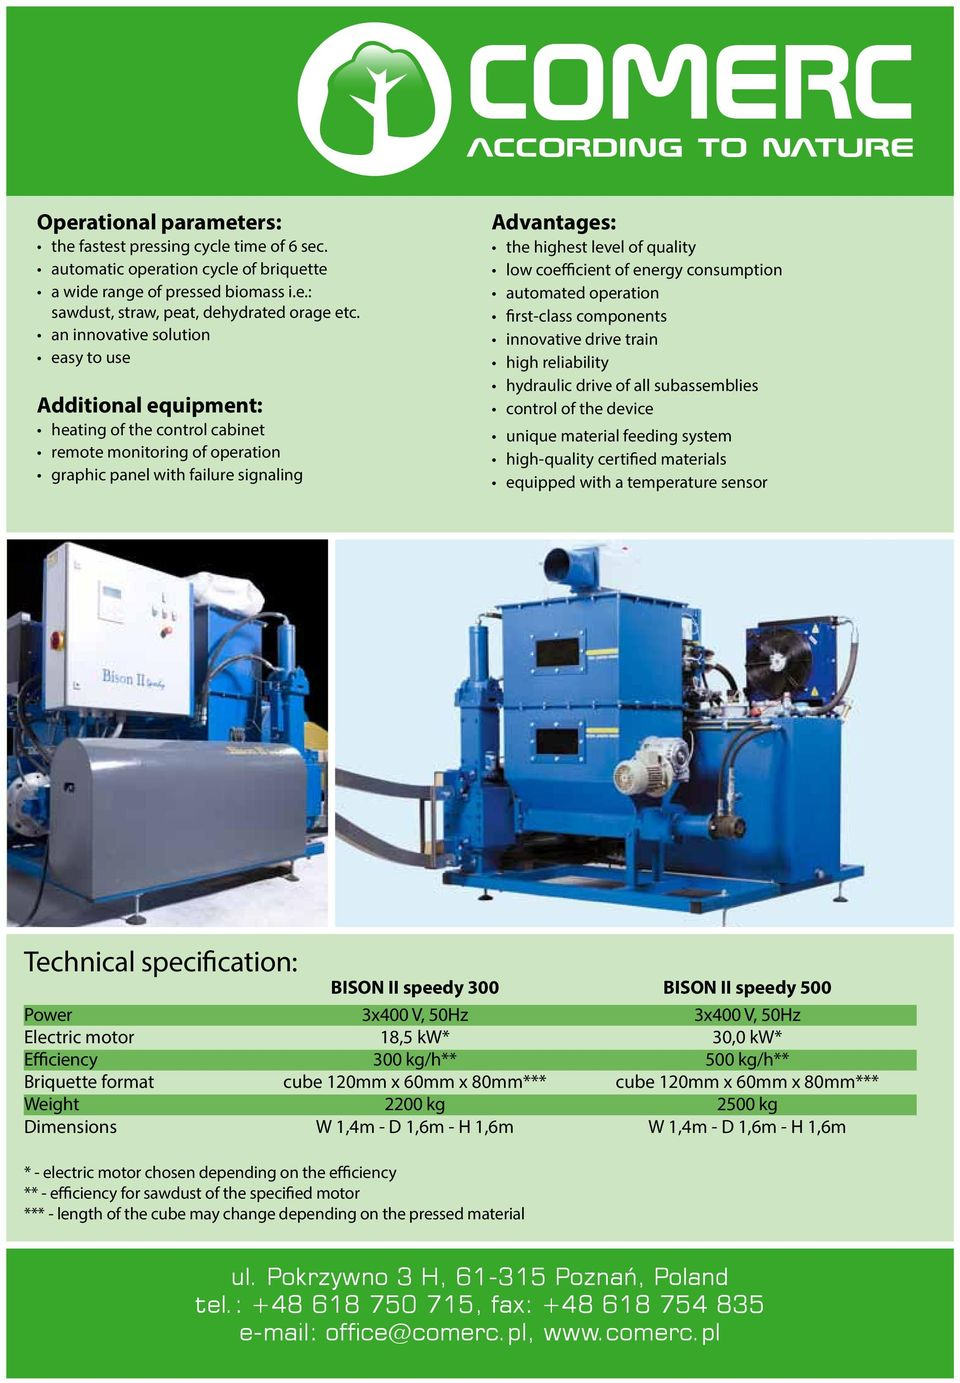 low coefficient of energy consumption automated operation first-class components innovative drive train high reliability hydraulic drive of all subassemblies control of the device unique material